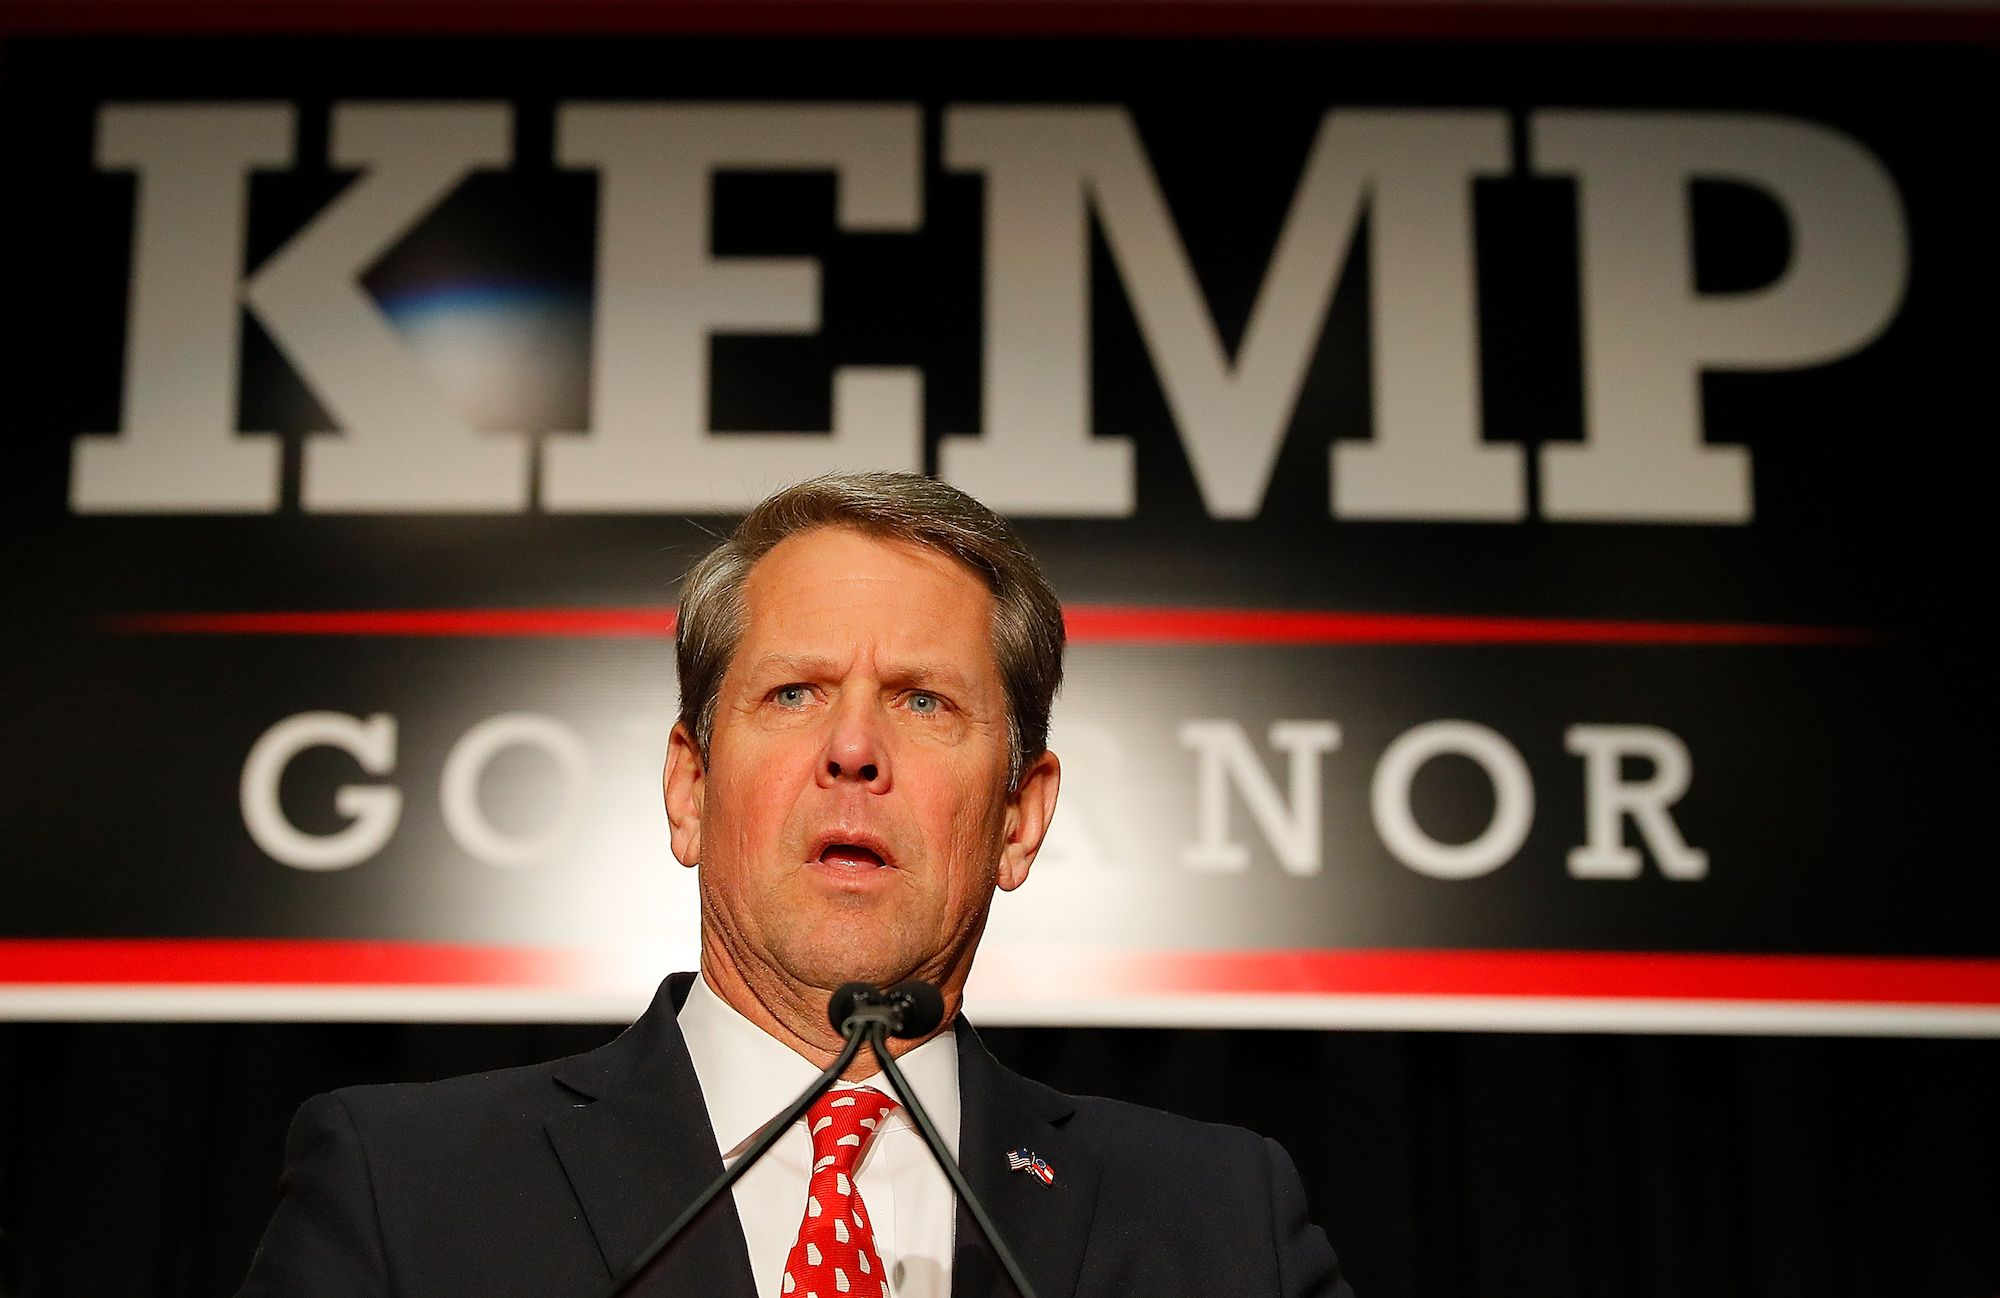 Brian Kemp Is What You Get When Allegiance to Trump Is All That Matters